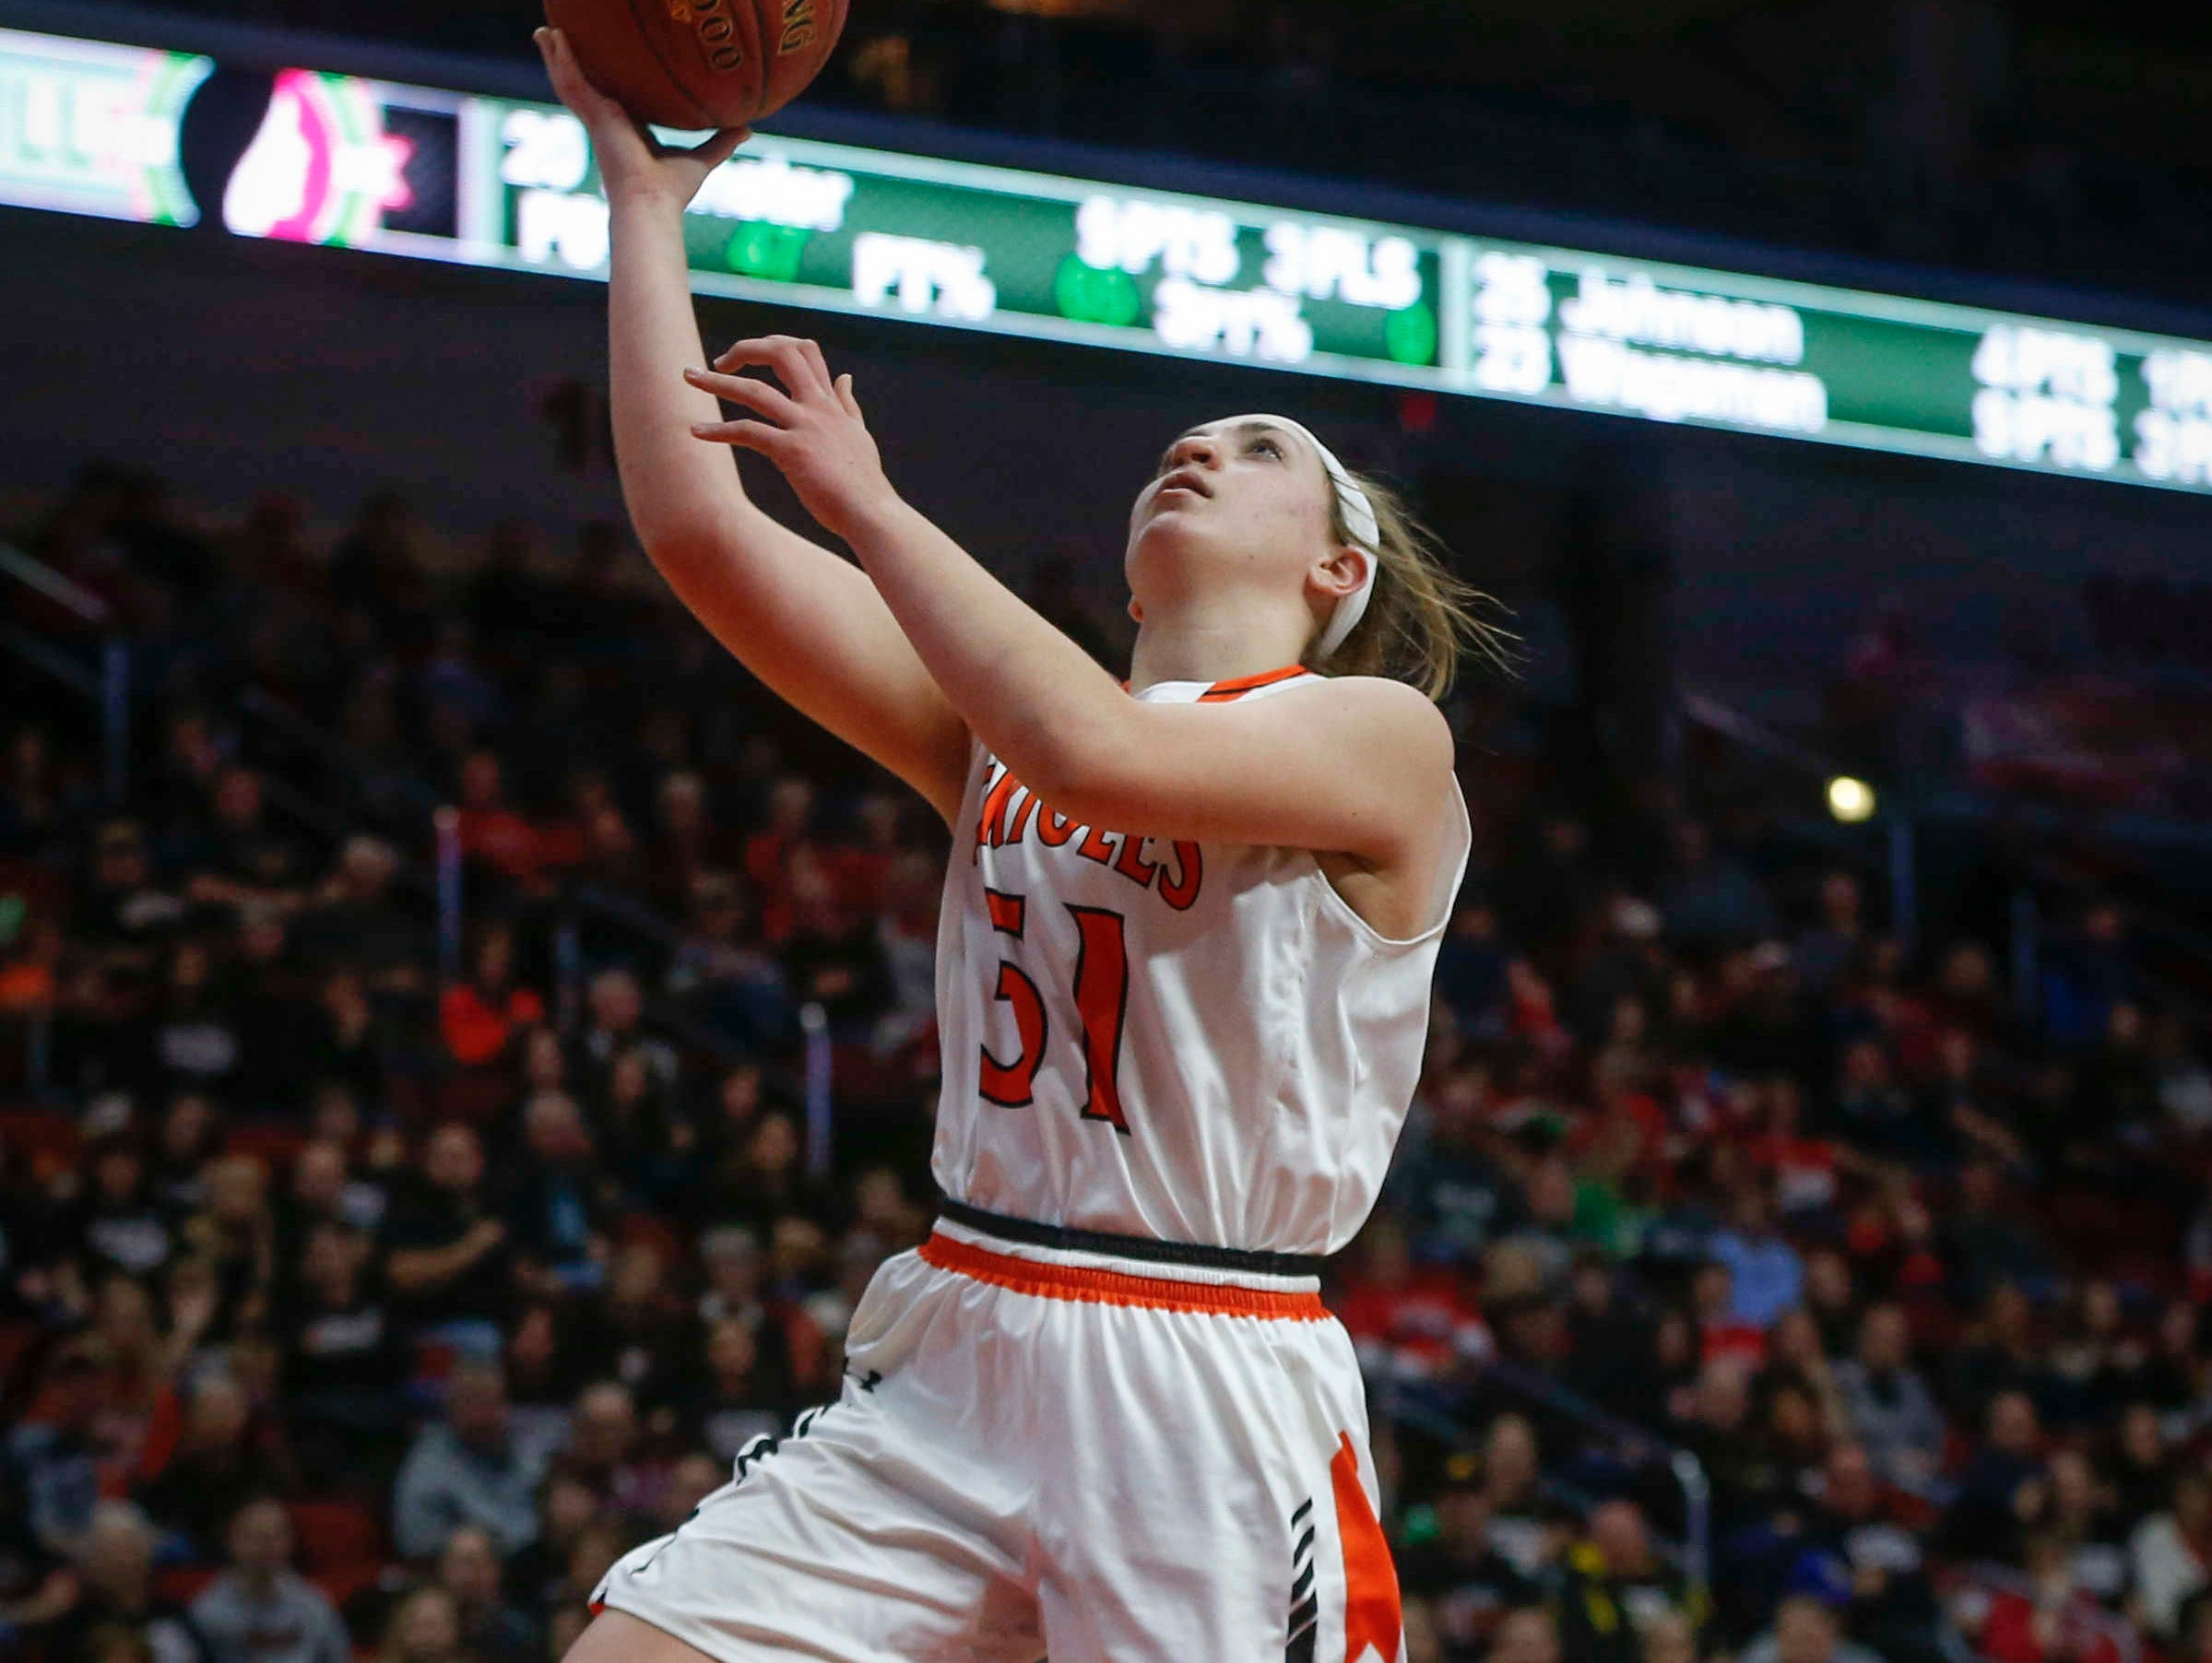 Springville junior Mikayla Nachazel gets free under the basket for a field goal against Kingsley-Pierson during the Iowa high school girls state basketball tournament on Thursday, March 2, 2017, at Wells Fargo Arena in Des Moines.